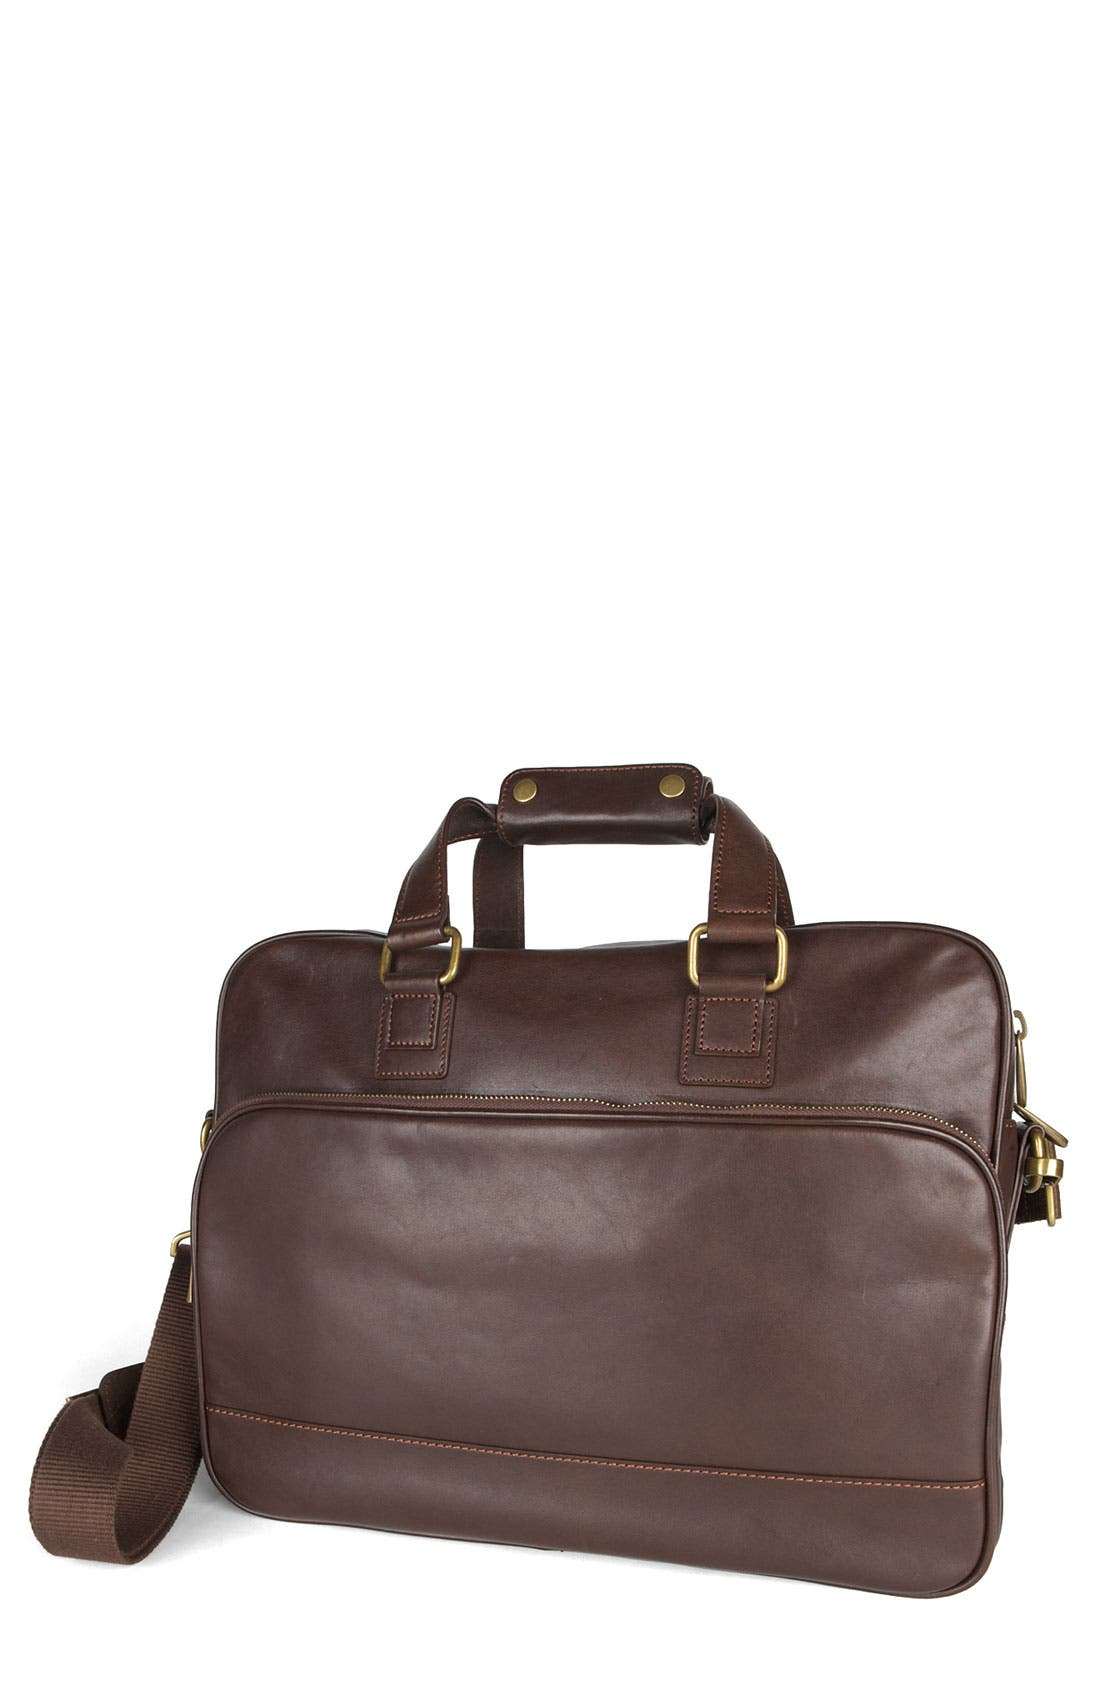 Alternate Image 1 Selected - Bosca Top Zip Leather Briefcase